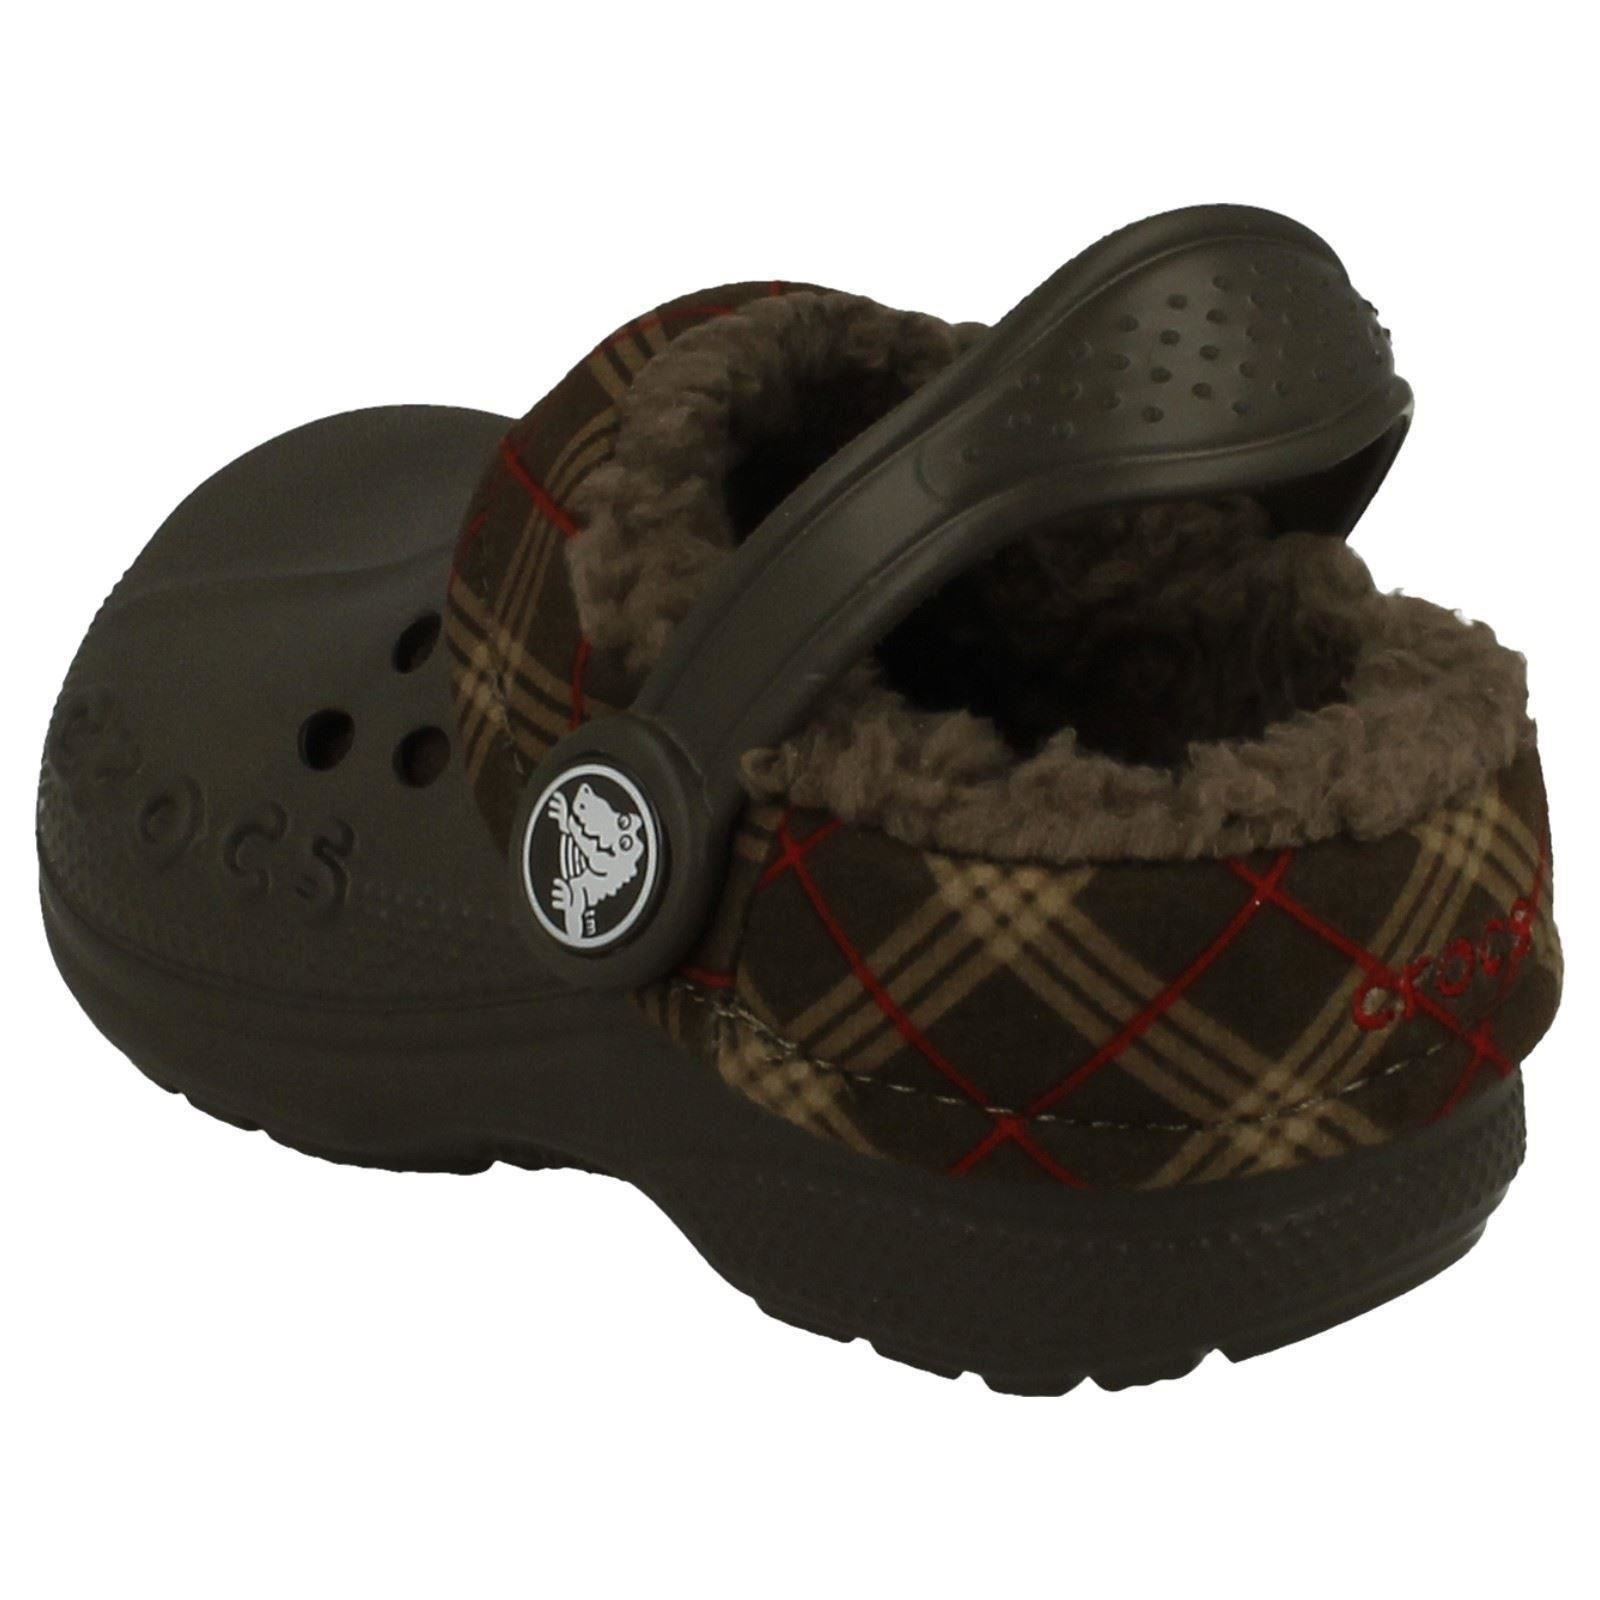 6c4bc963ce9c9 Crocs-Boys-Sandals-Blitzen-Winter-Plaid-Kids thumbnail 6